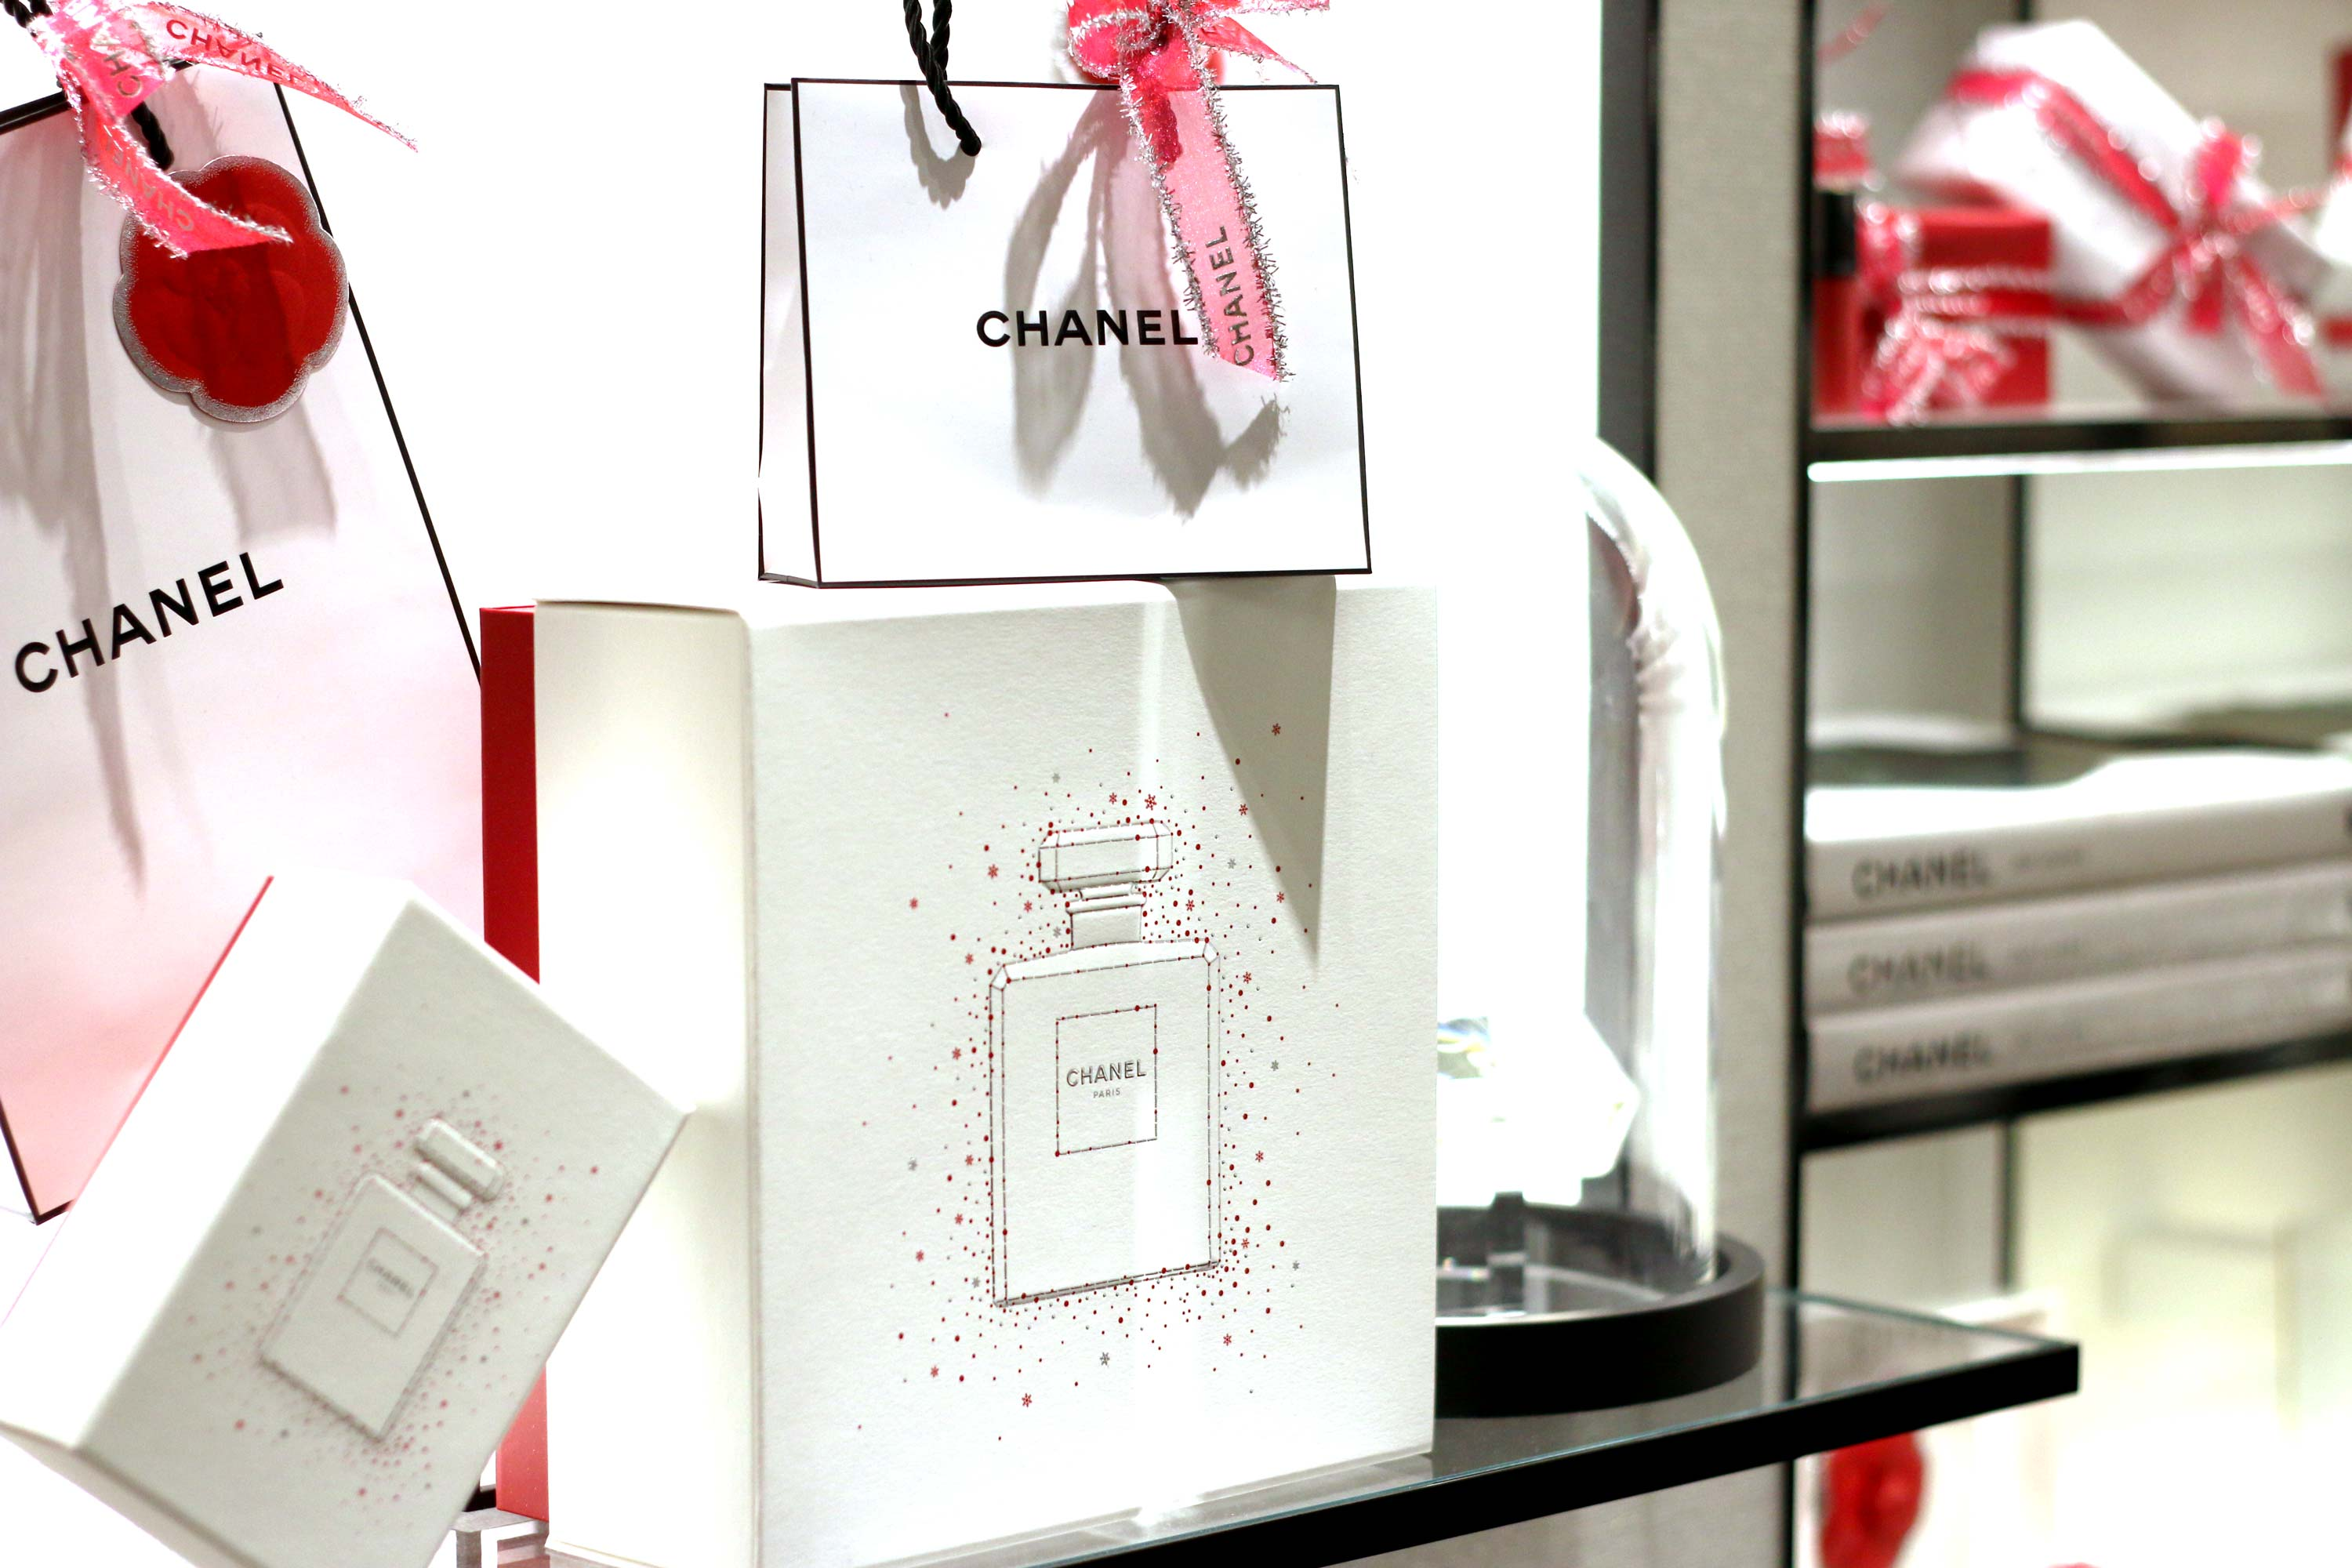 chanel-beauty-boutique-hamburg-3